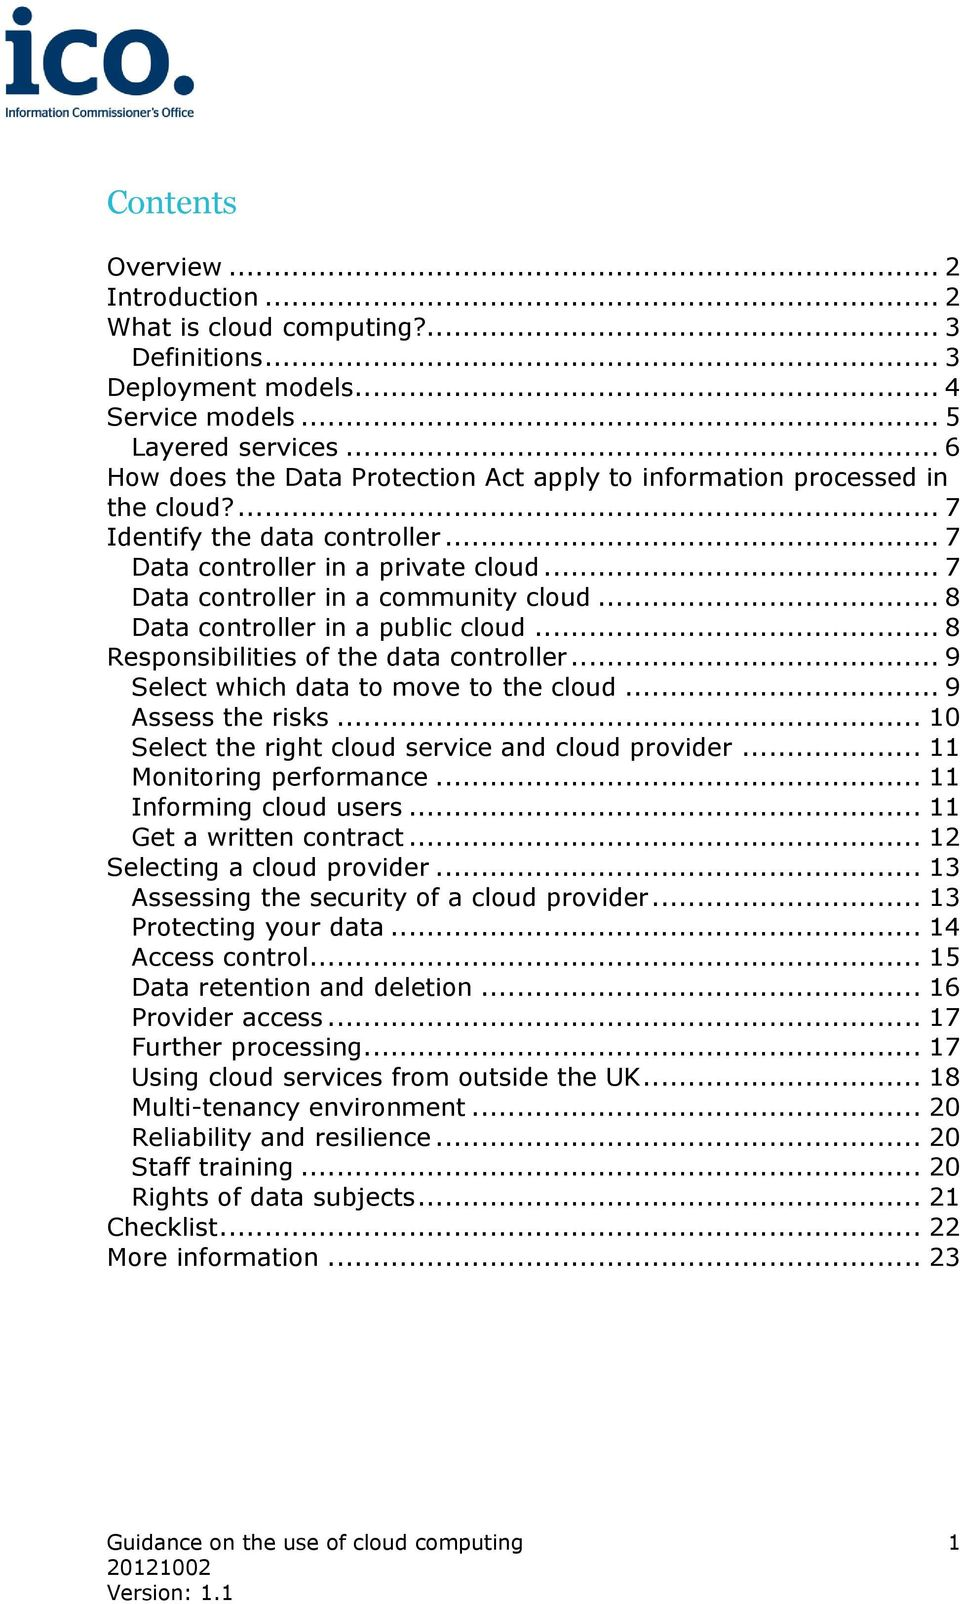 .. 8 Data controller in a public cloud... 8 Responsibilities of the data controller... 9 Select which data to move to the cloud... 9 Assess the risks.